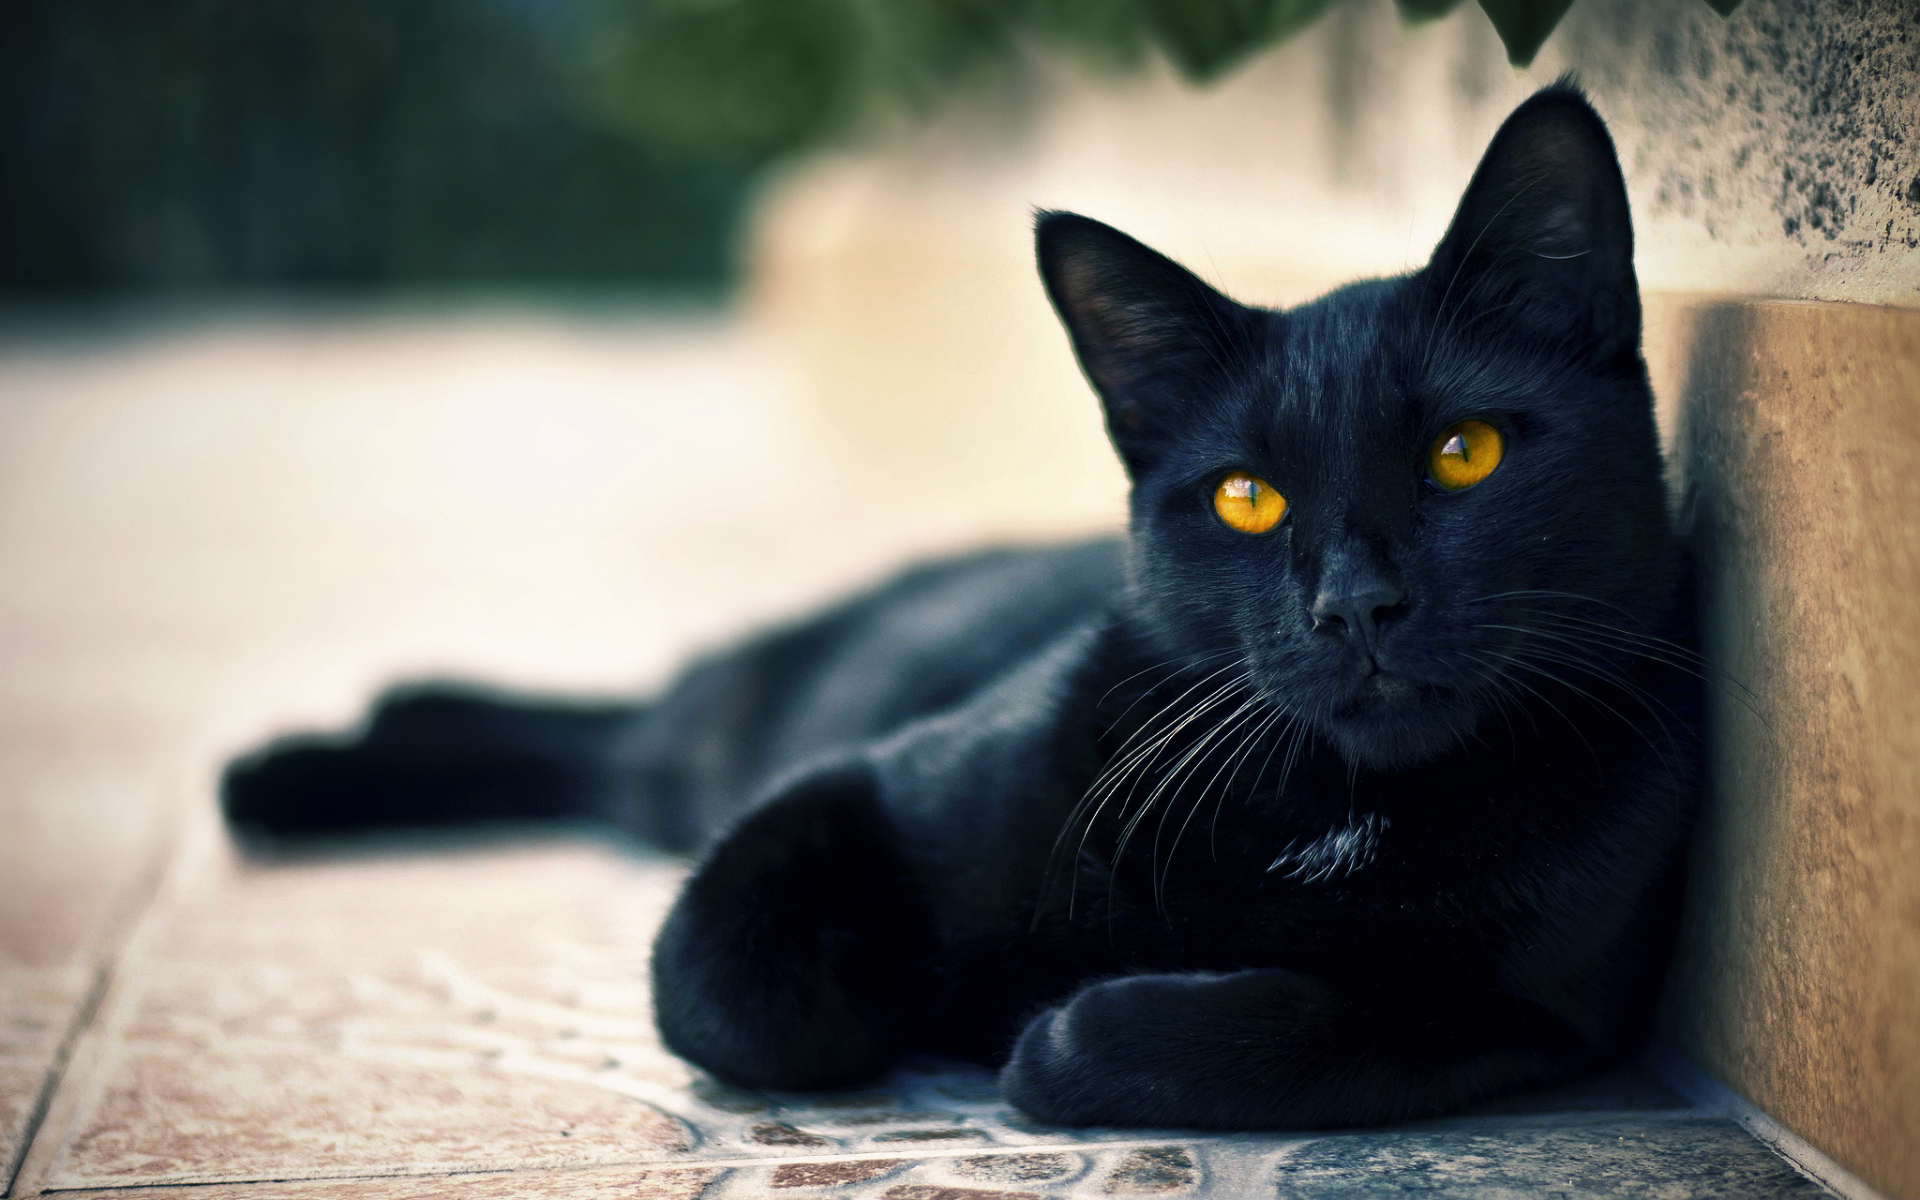 http://www.awesomelycute.com/gallery/2014/11/black-cats-awesomelycute.com-14.jpg